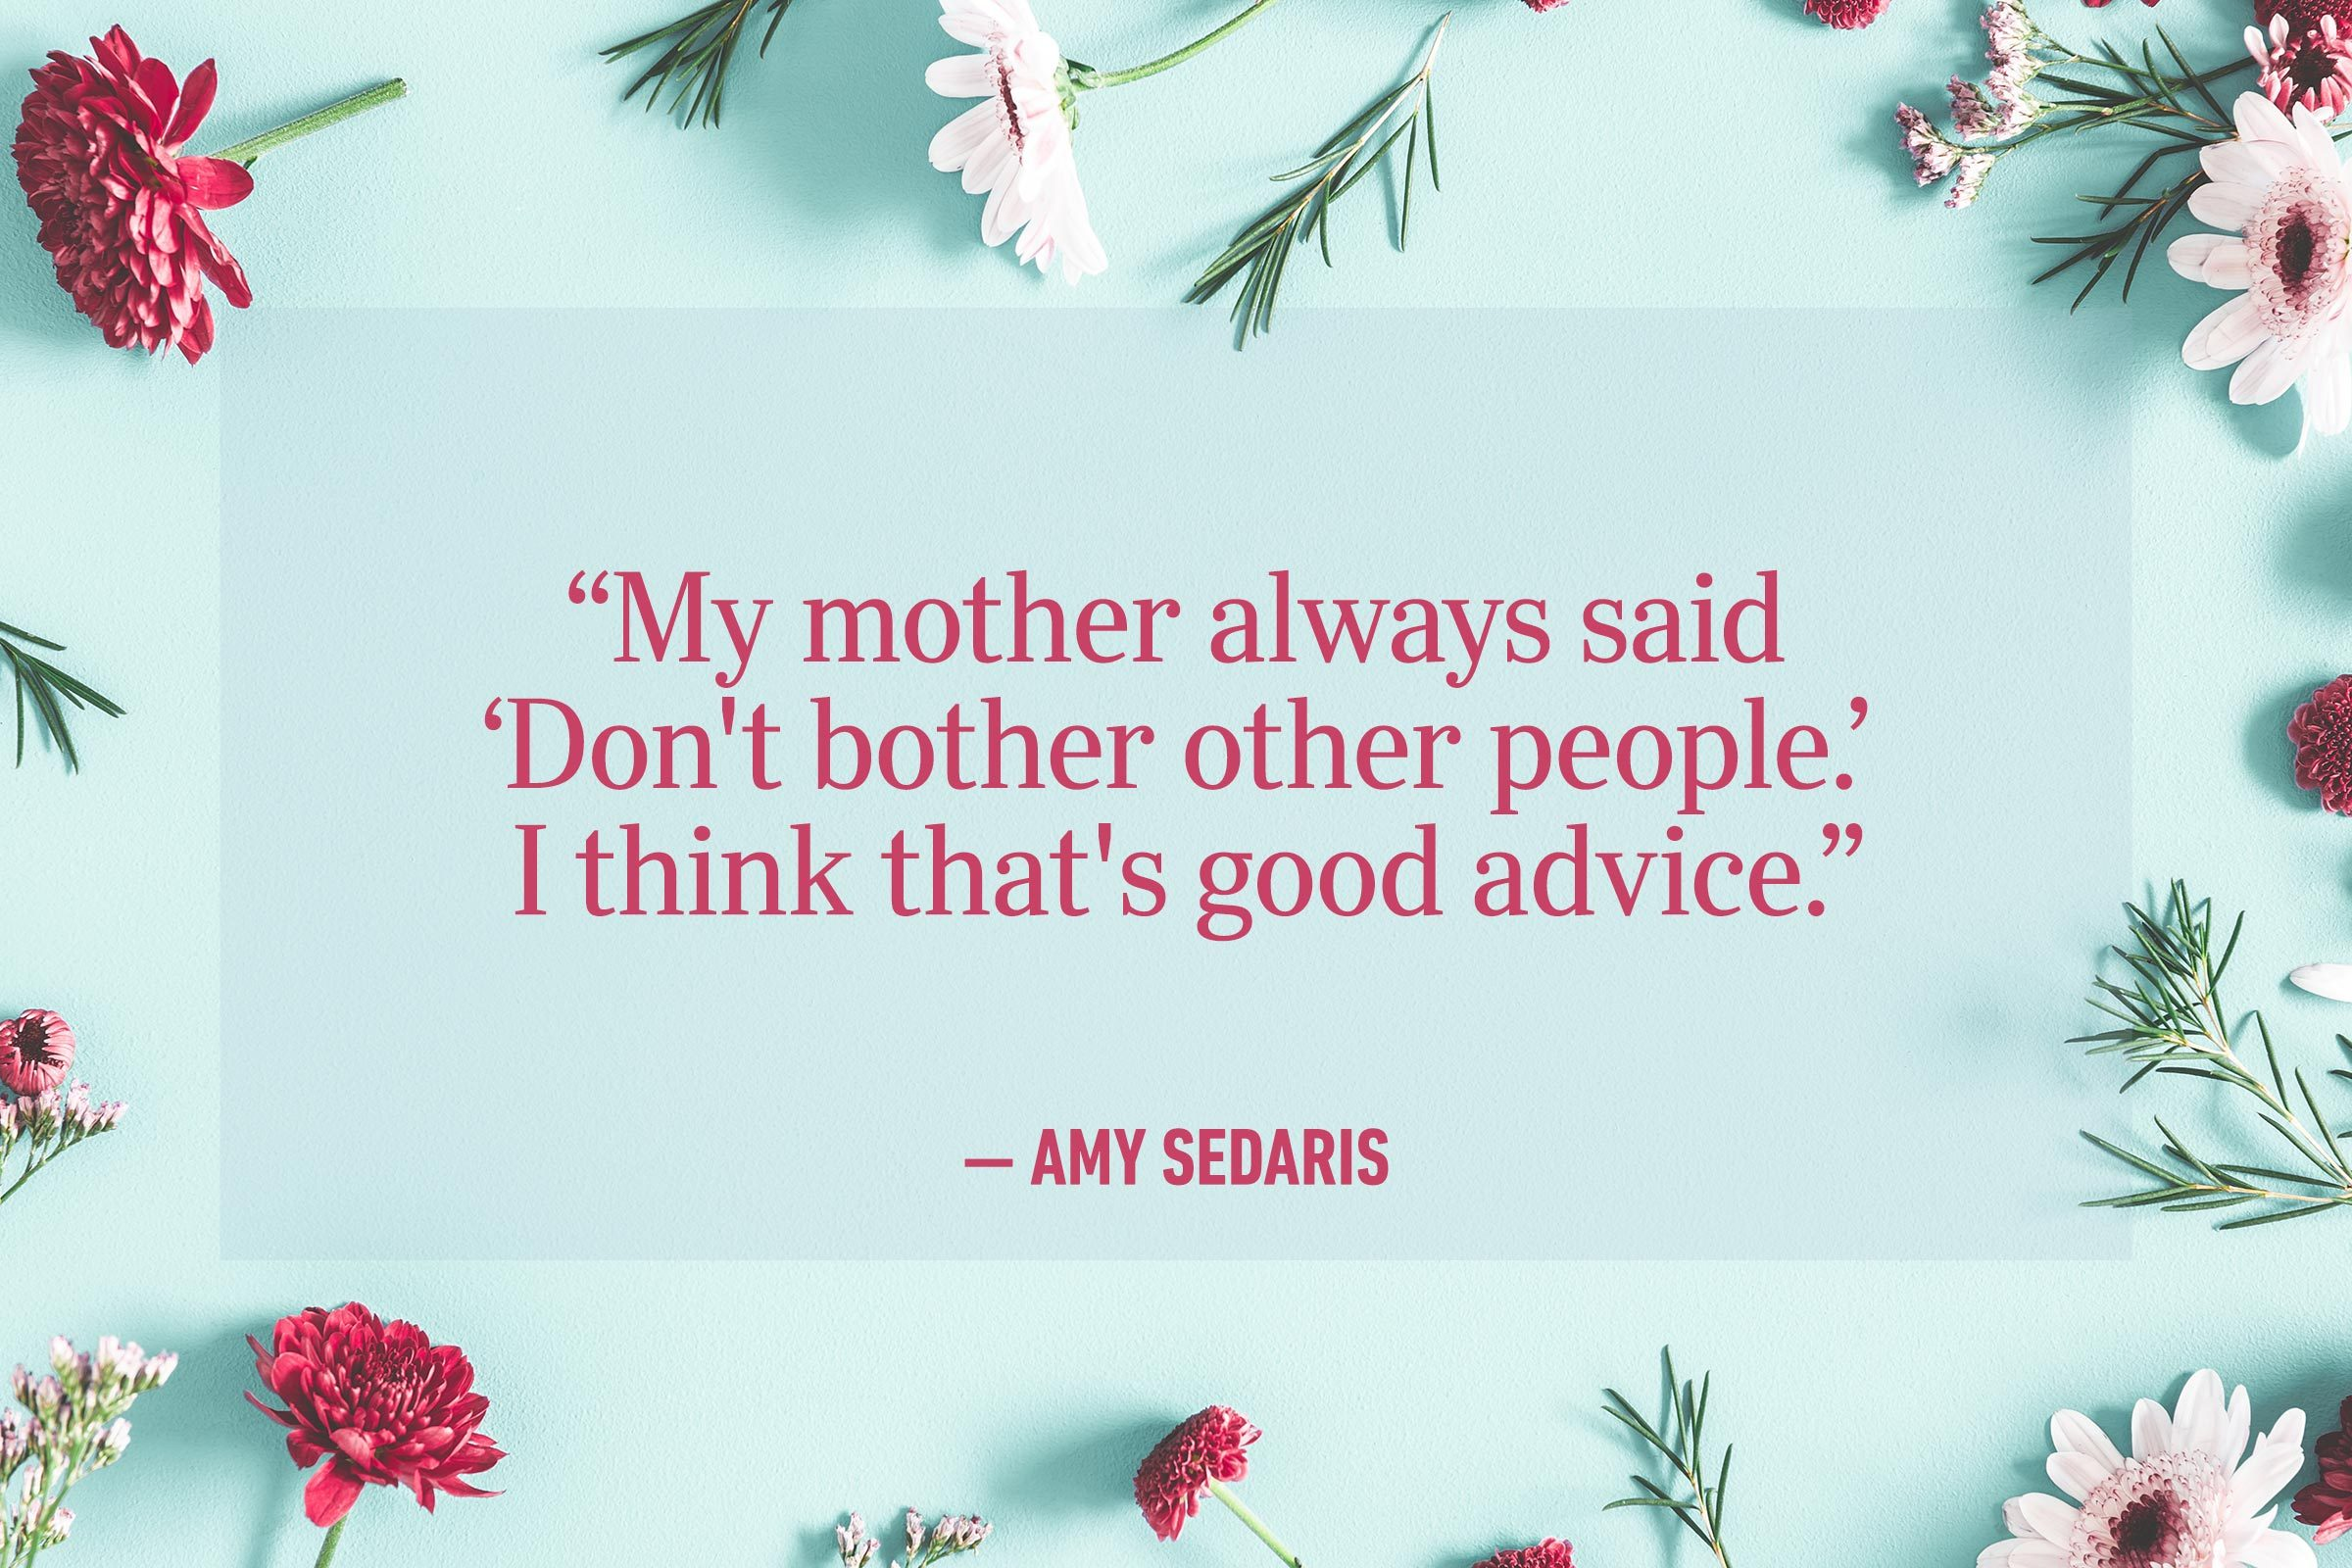 """My mother always said 'Don't bother other people.' I think that's good advice."" —Amy Sedaris"